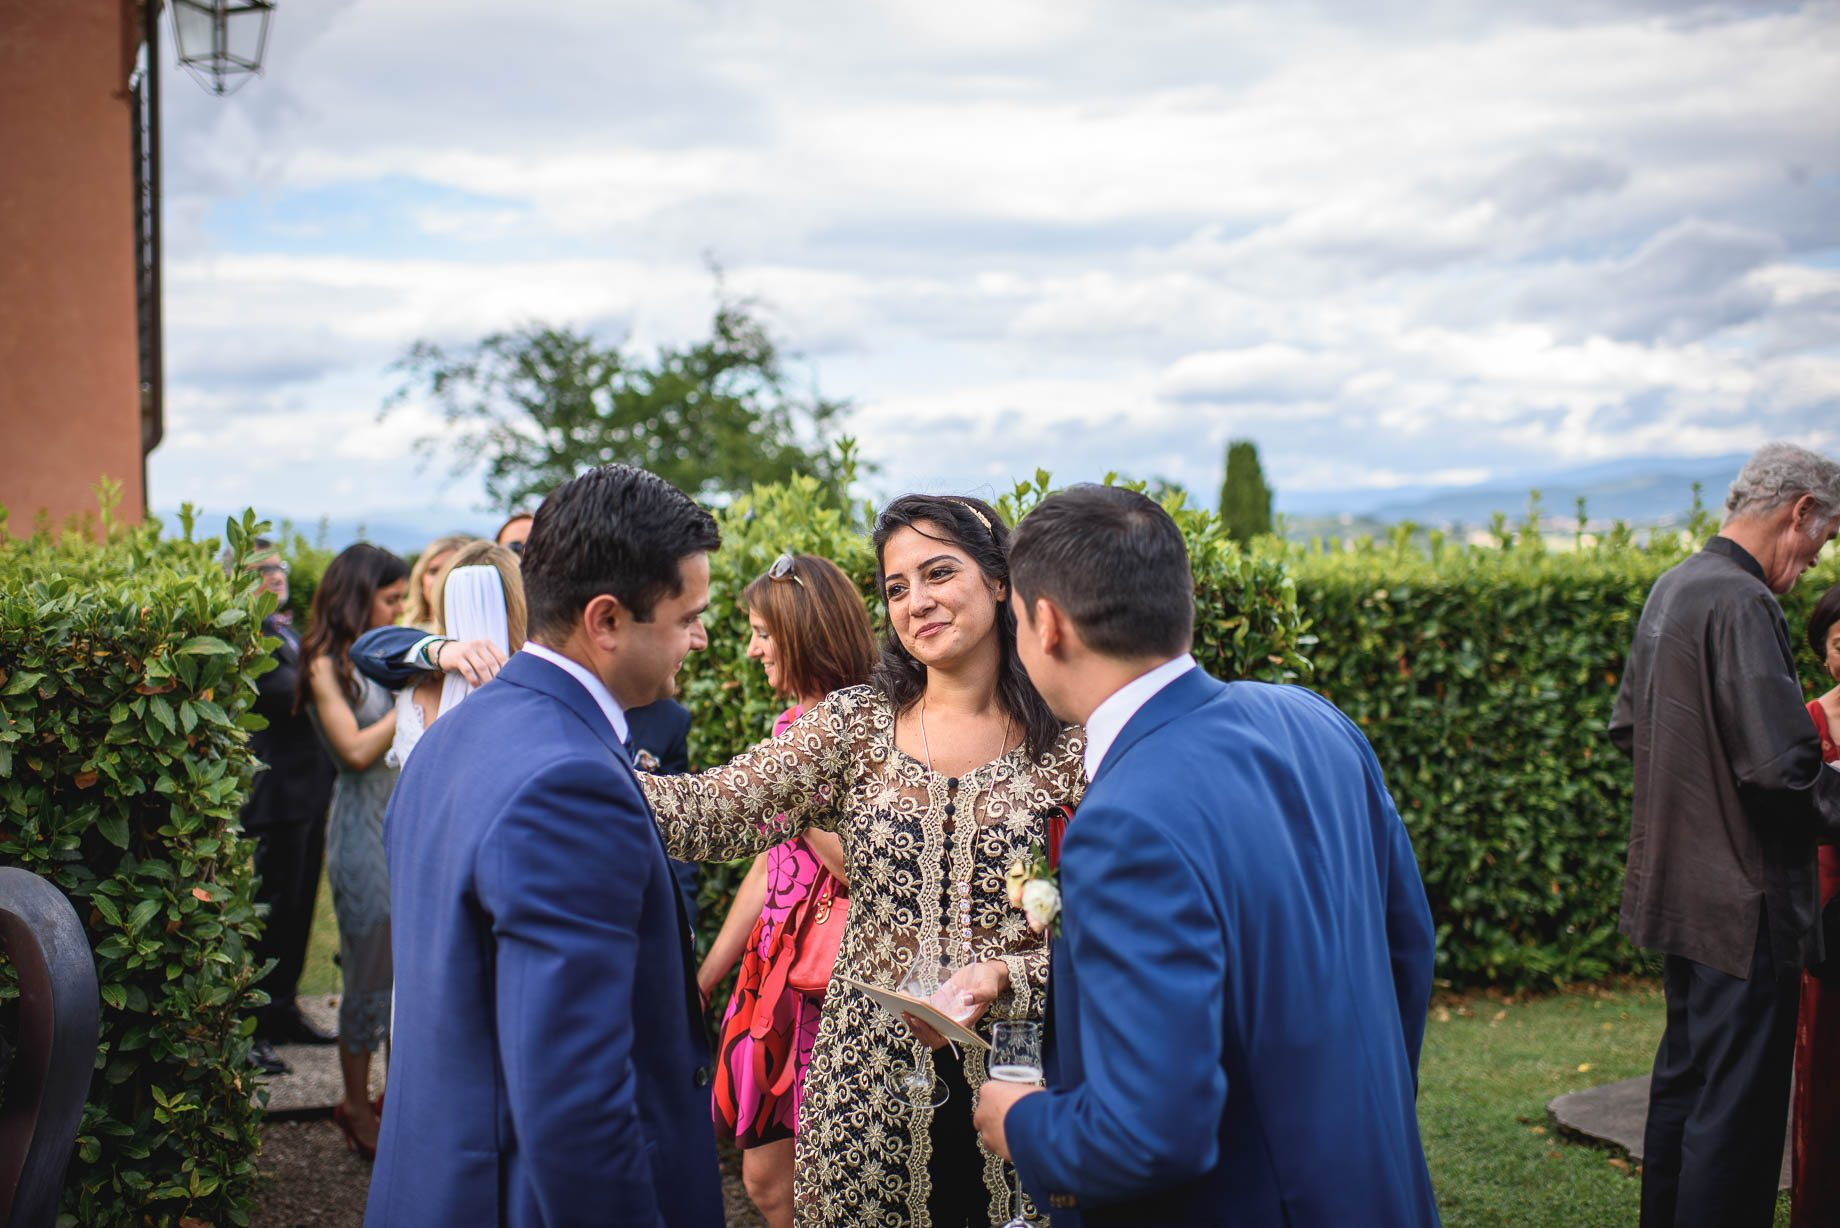 Tuscany wedding photography - Roisin and Moubin - Guy Collier Photography (127 of 251)